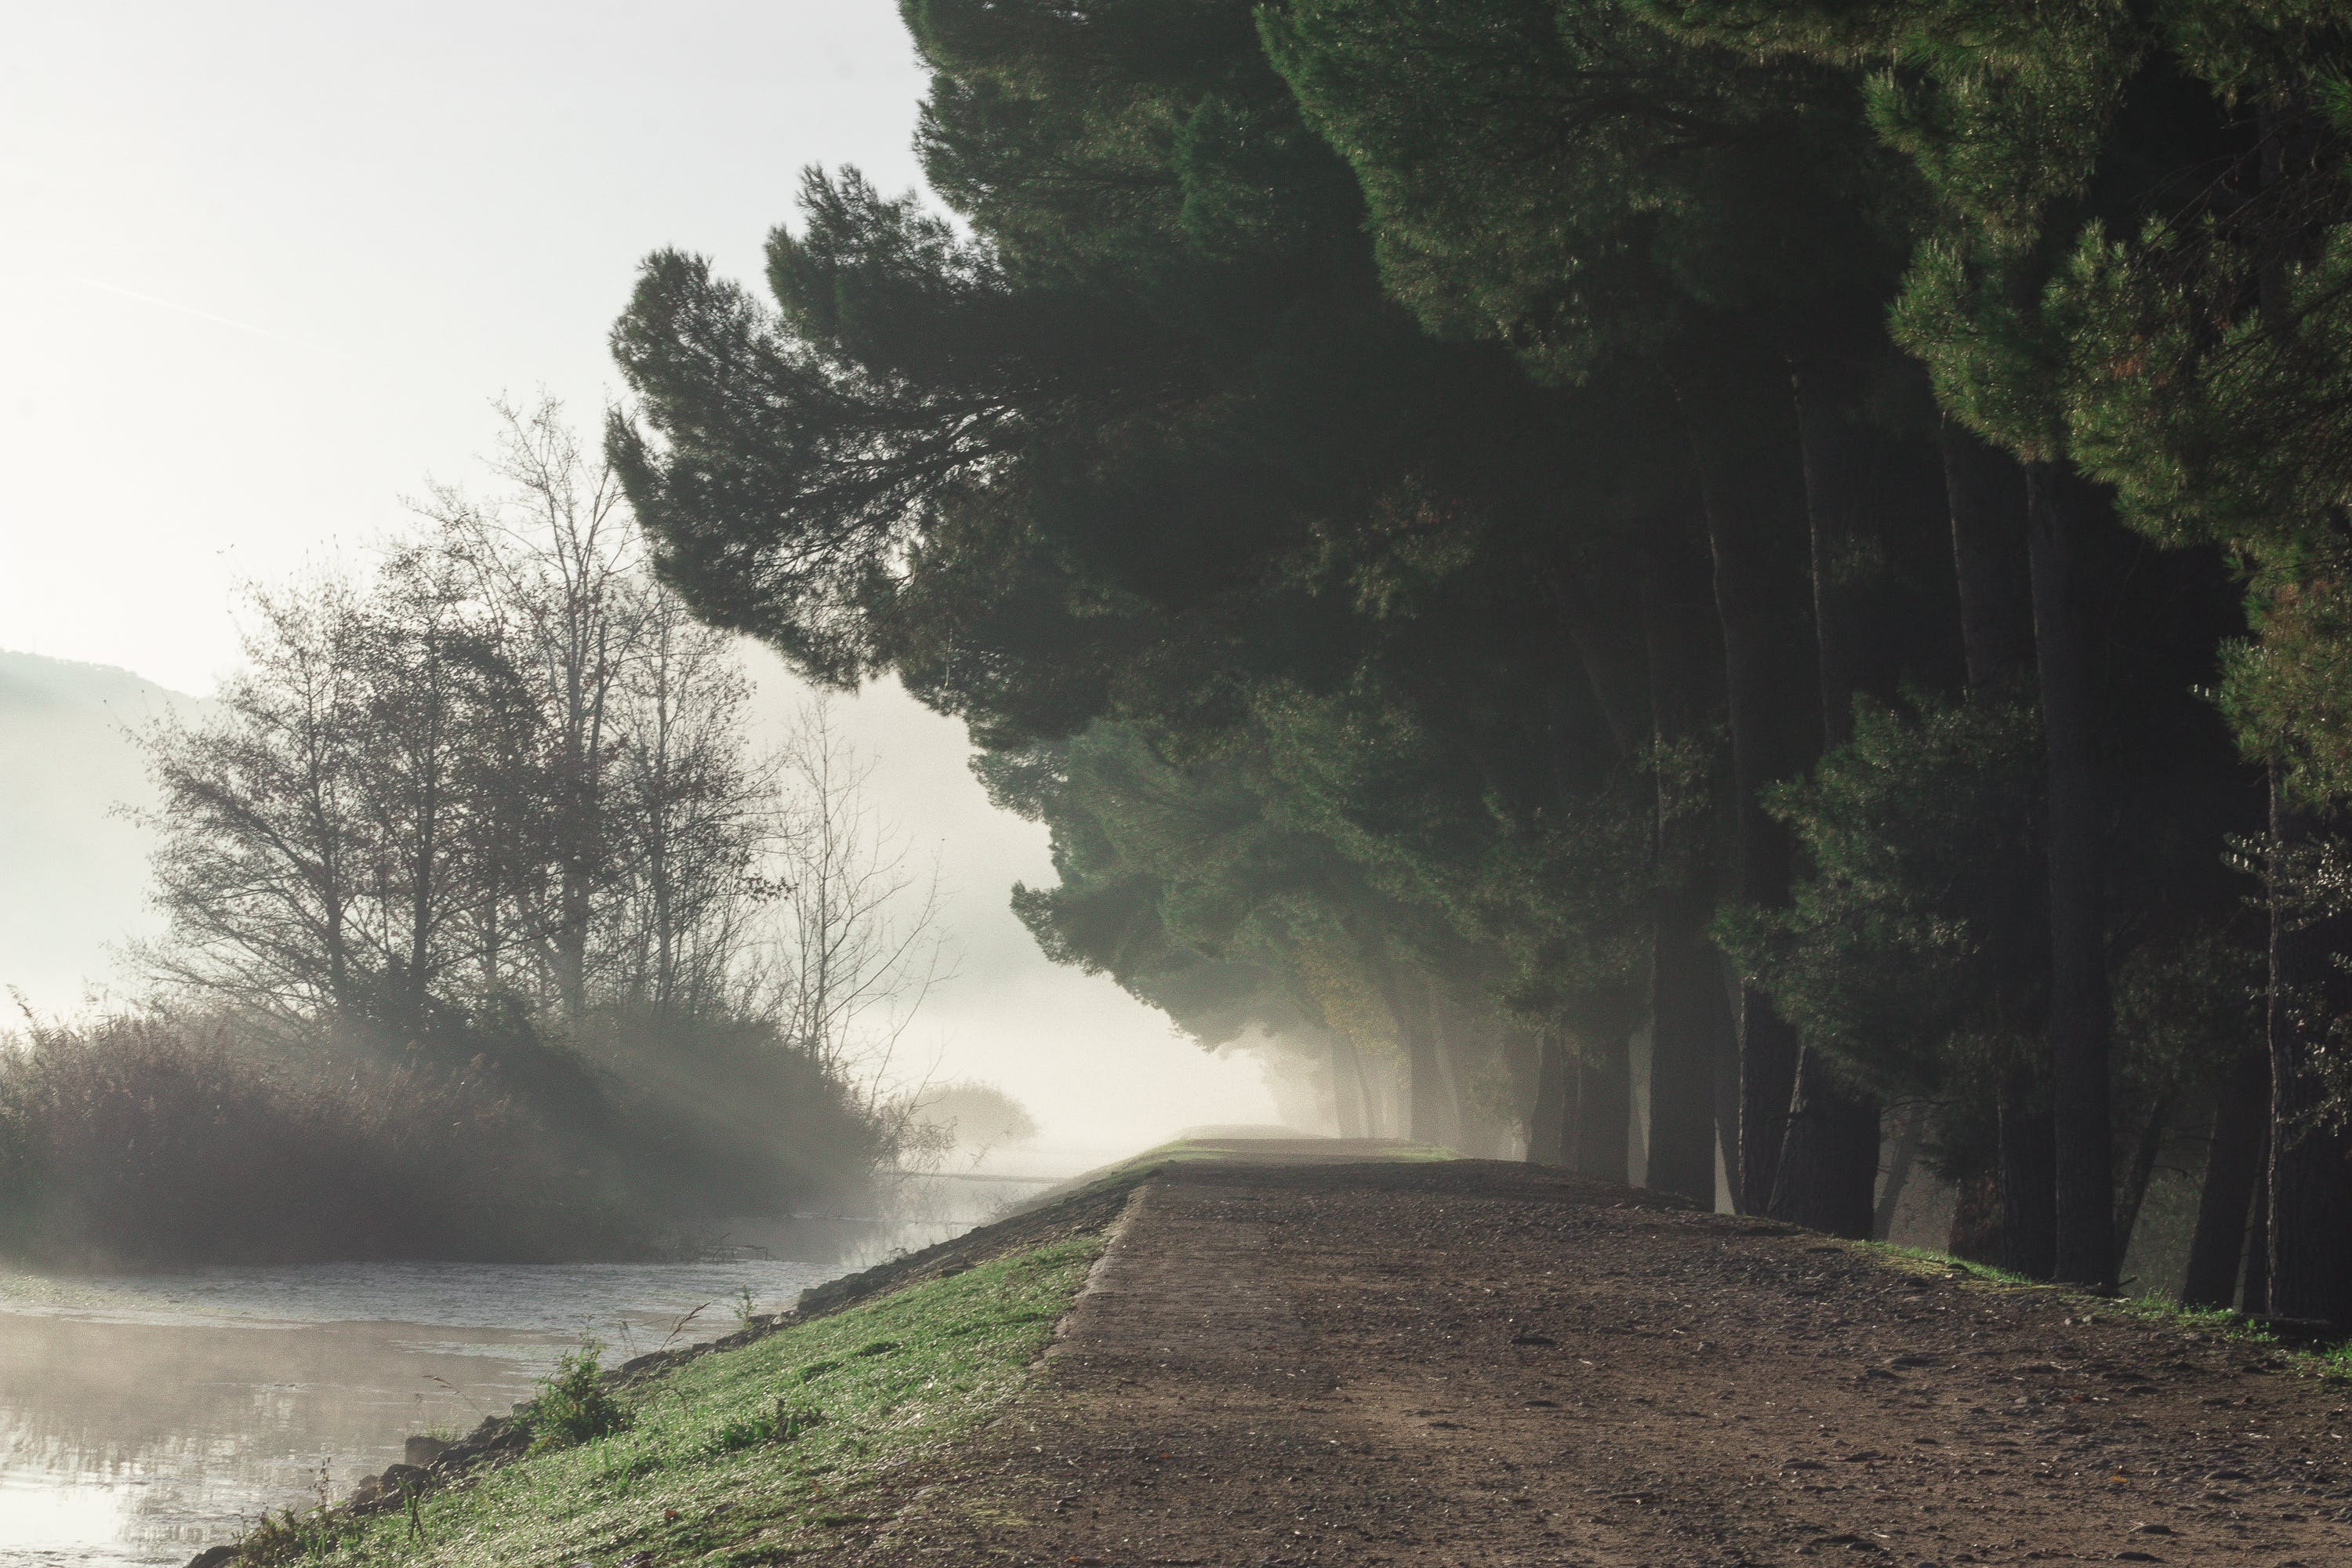 Mist Covered Dirt Road